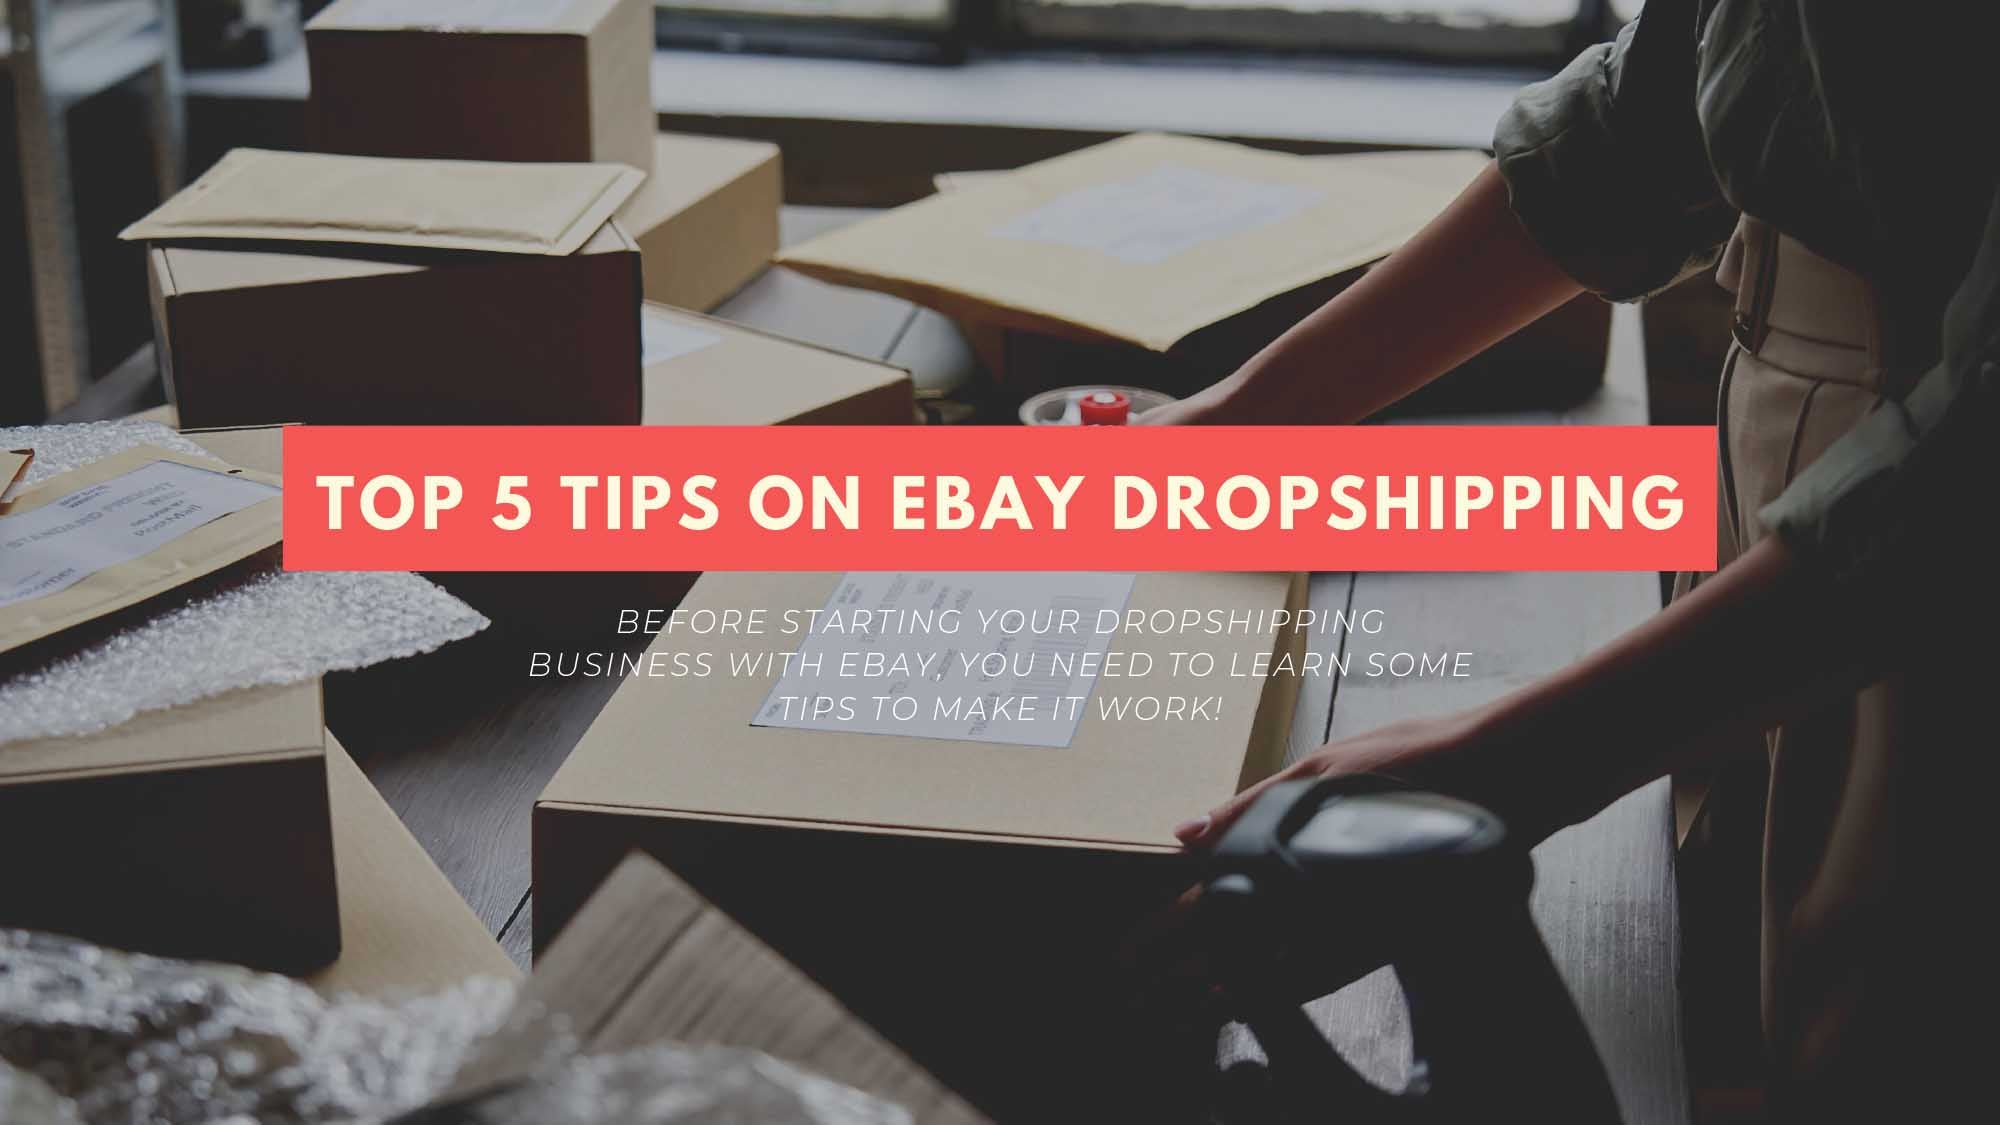 Learn These Top 5 Tips On eBay Dropshipping For A Better Business